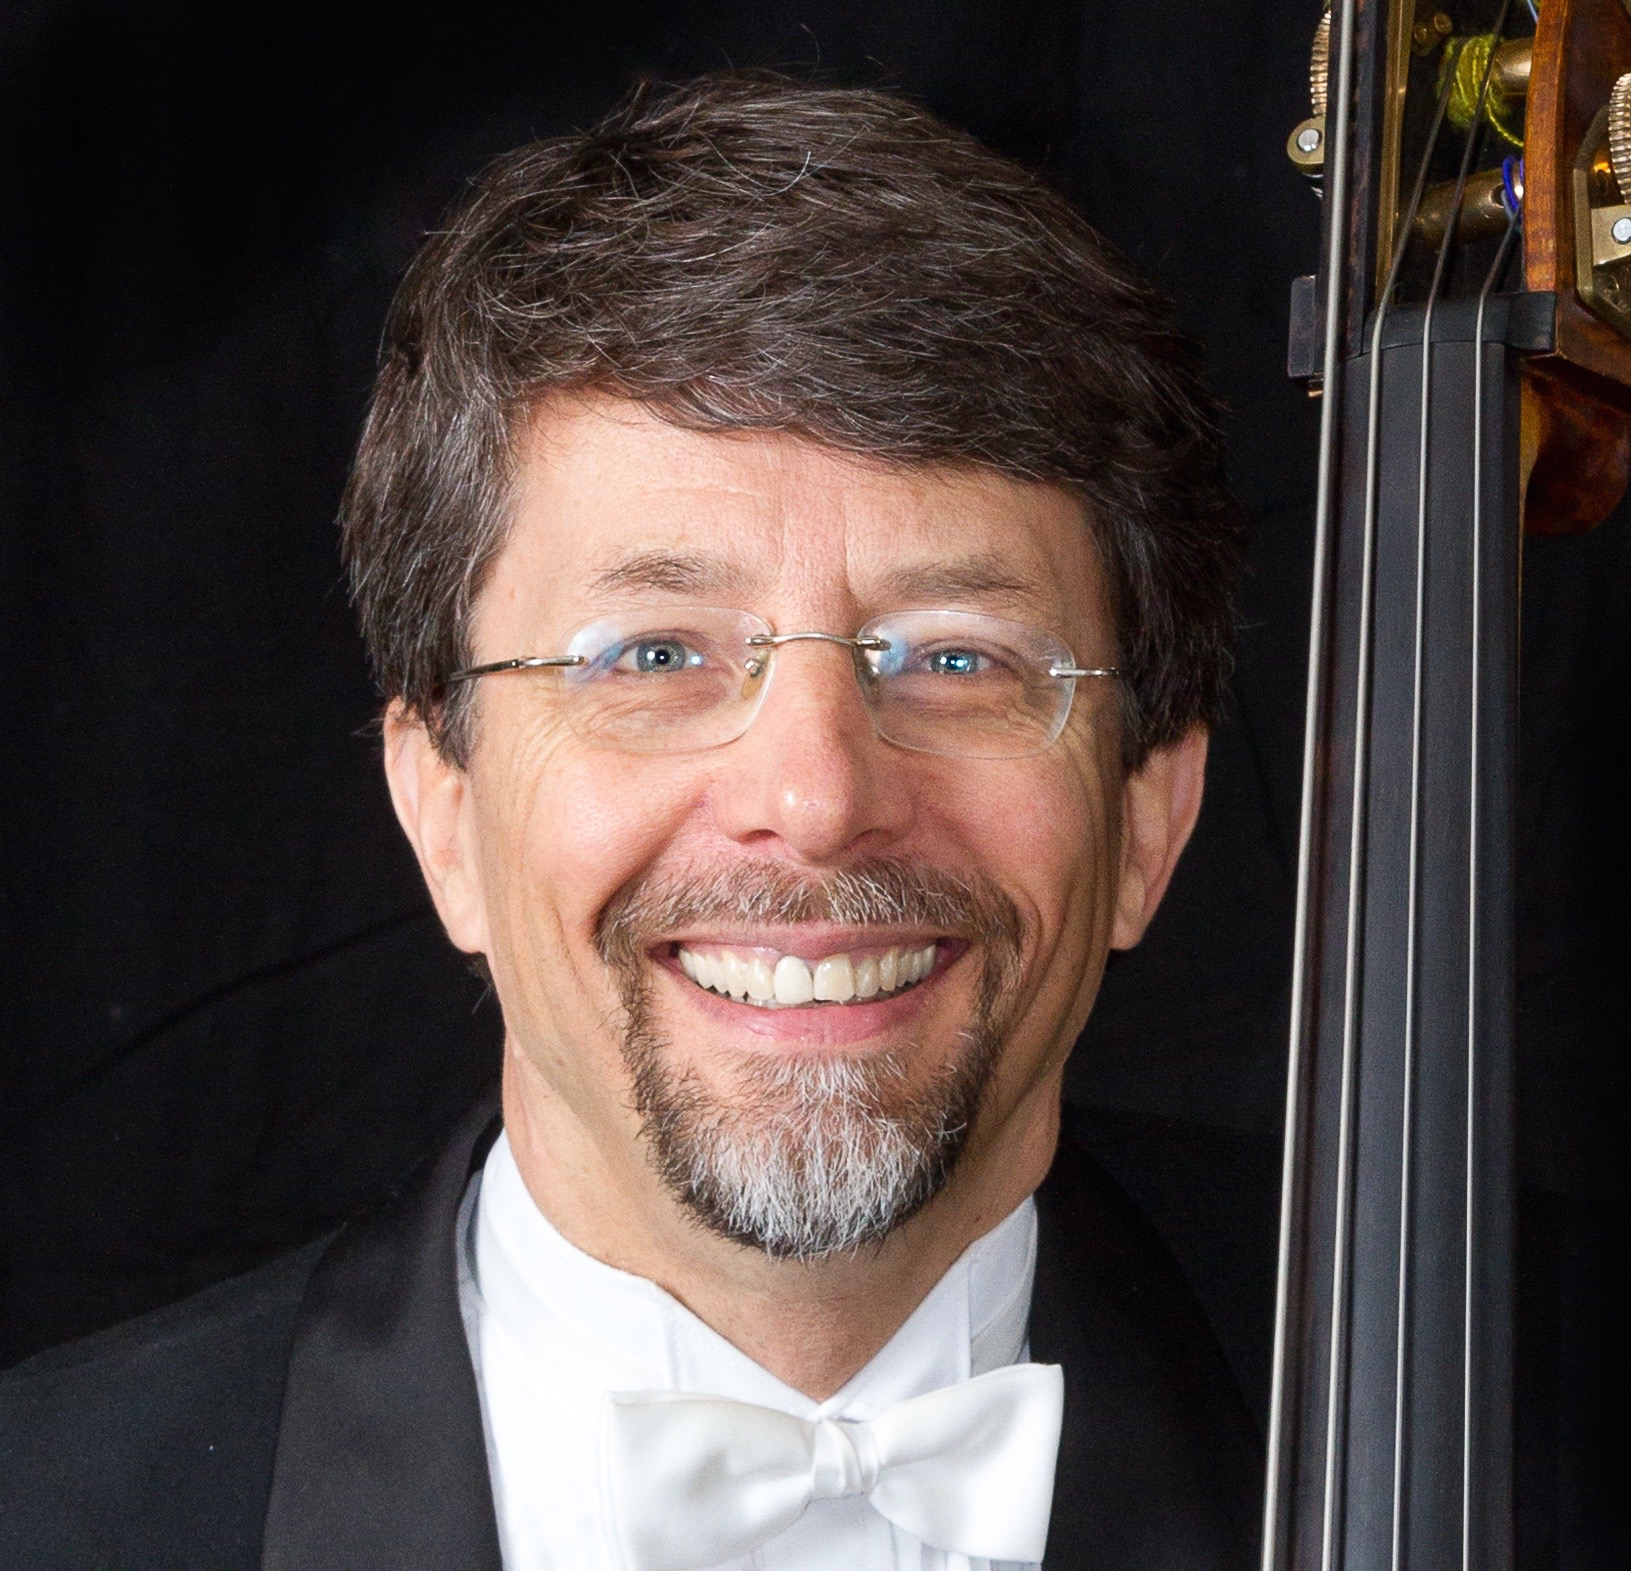 Celebration of milestones culminates in Carnegie Hall concert for UNT Regents professor